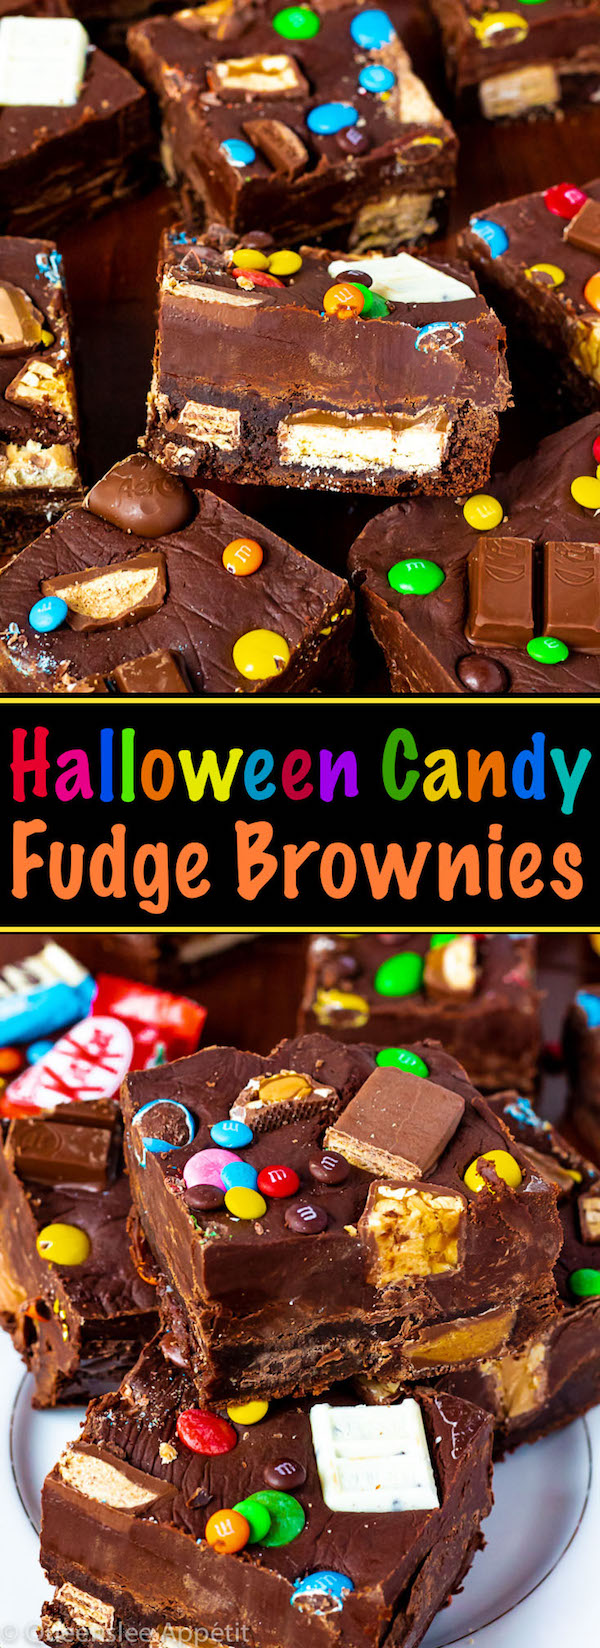 These Halloween Candy Fudge Brownies are a fun and delicious treat to make when you have leftover Halloween candy sitting around.